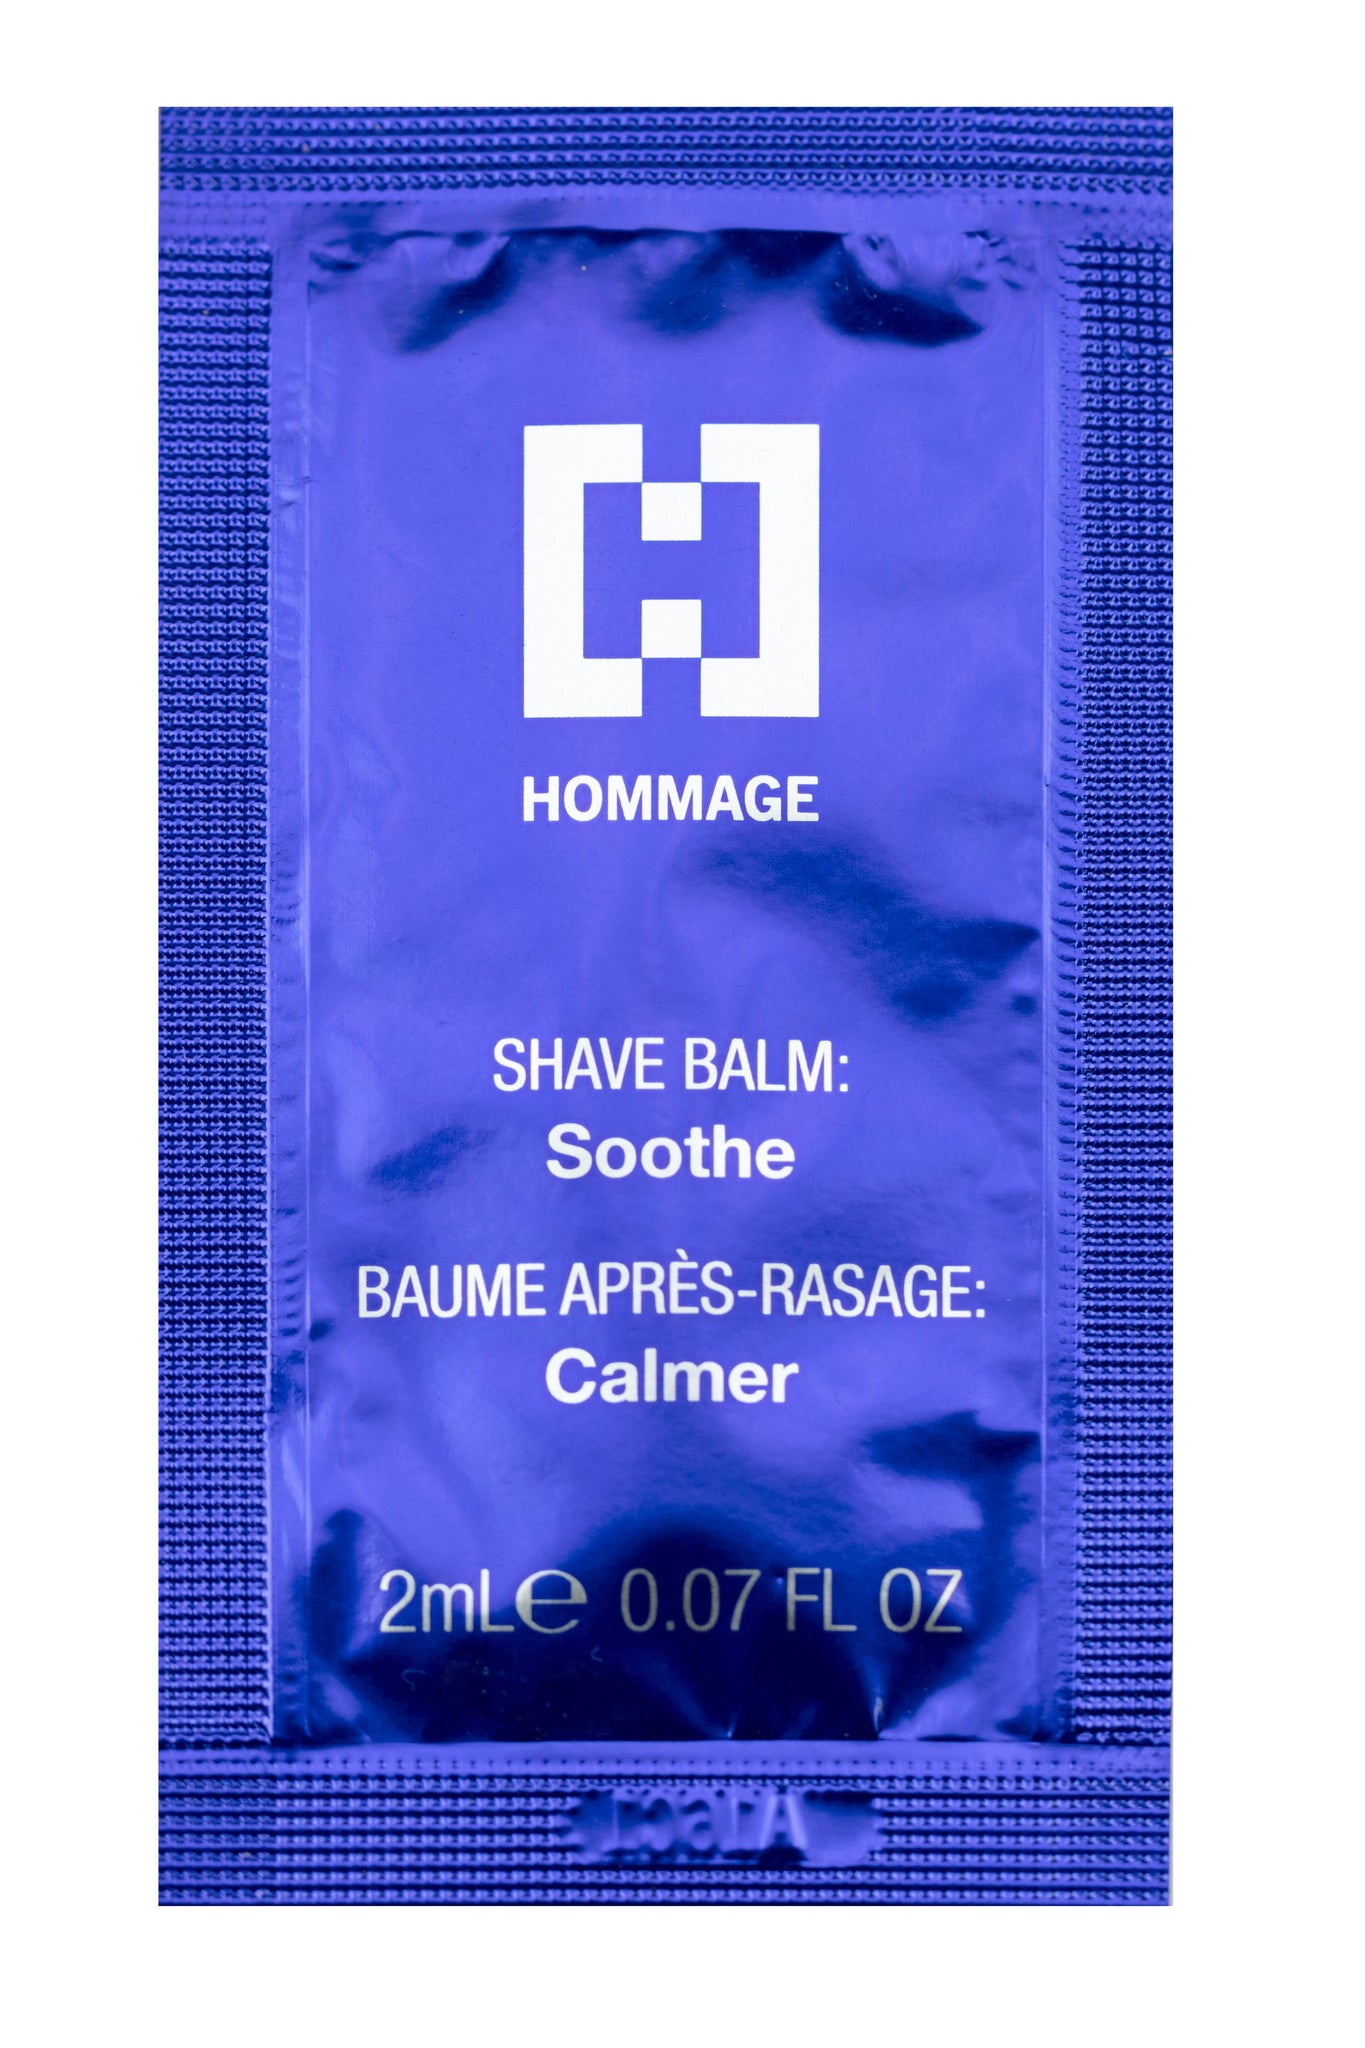 Sample Sachet - Shave Balm SOOTHE (2ml)